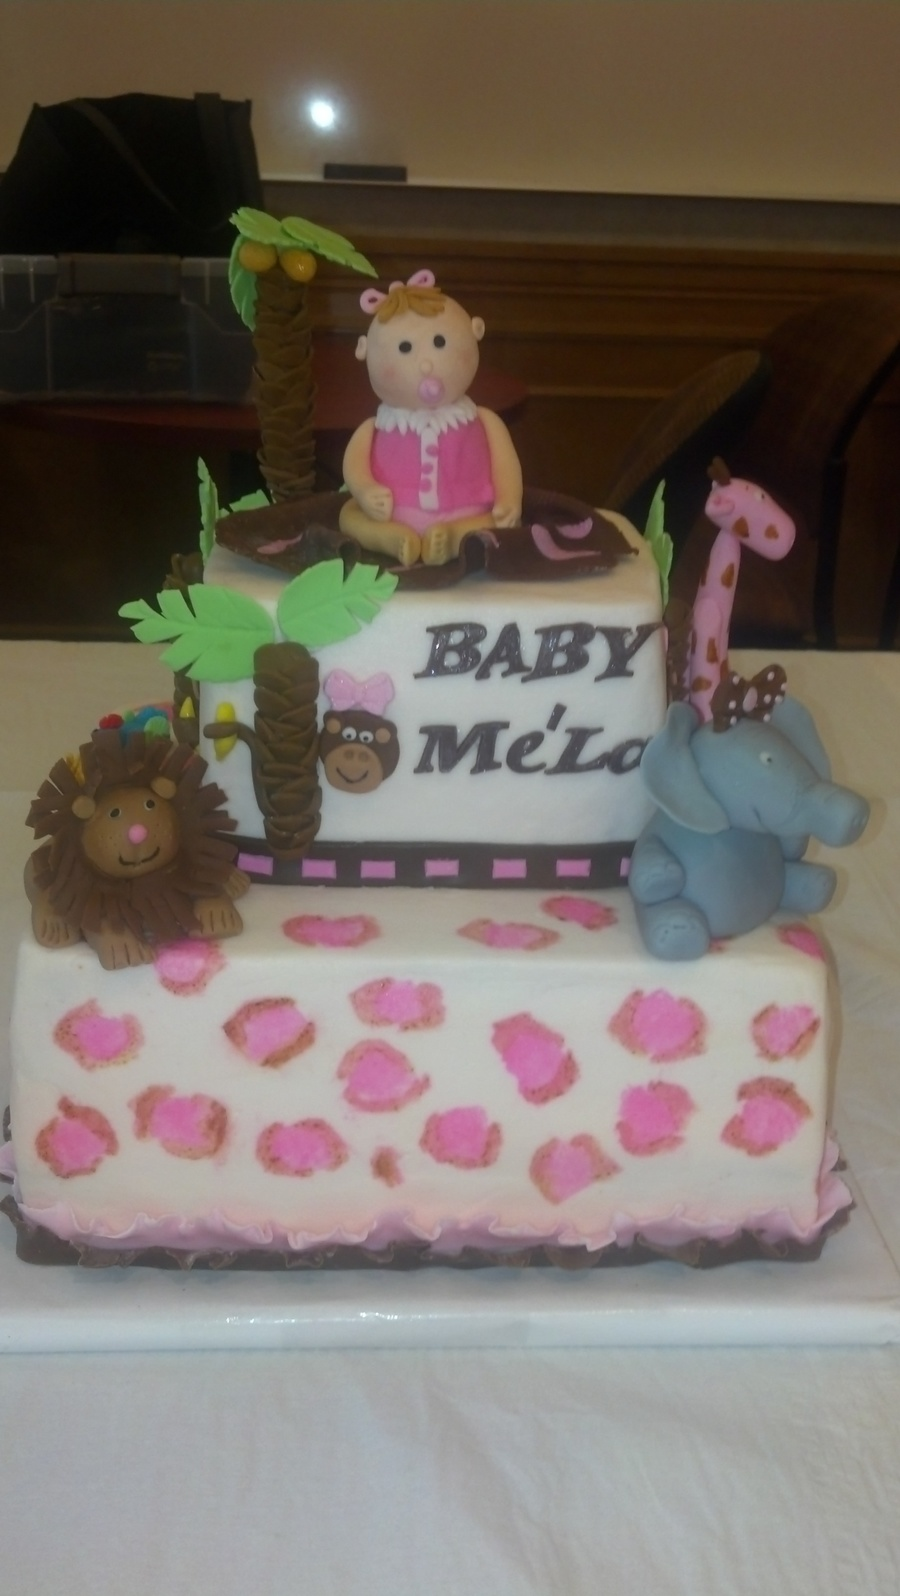 Finally Got An Order For A Baby Girl Shower Cake They Loved It on Cake Central